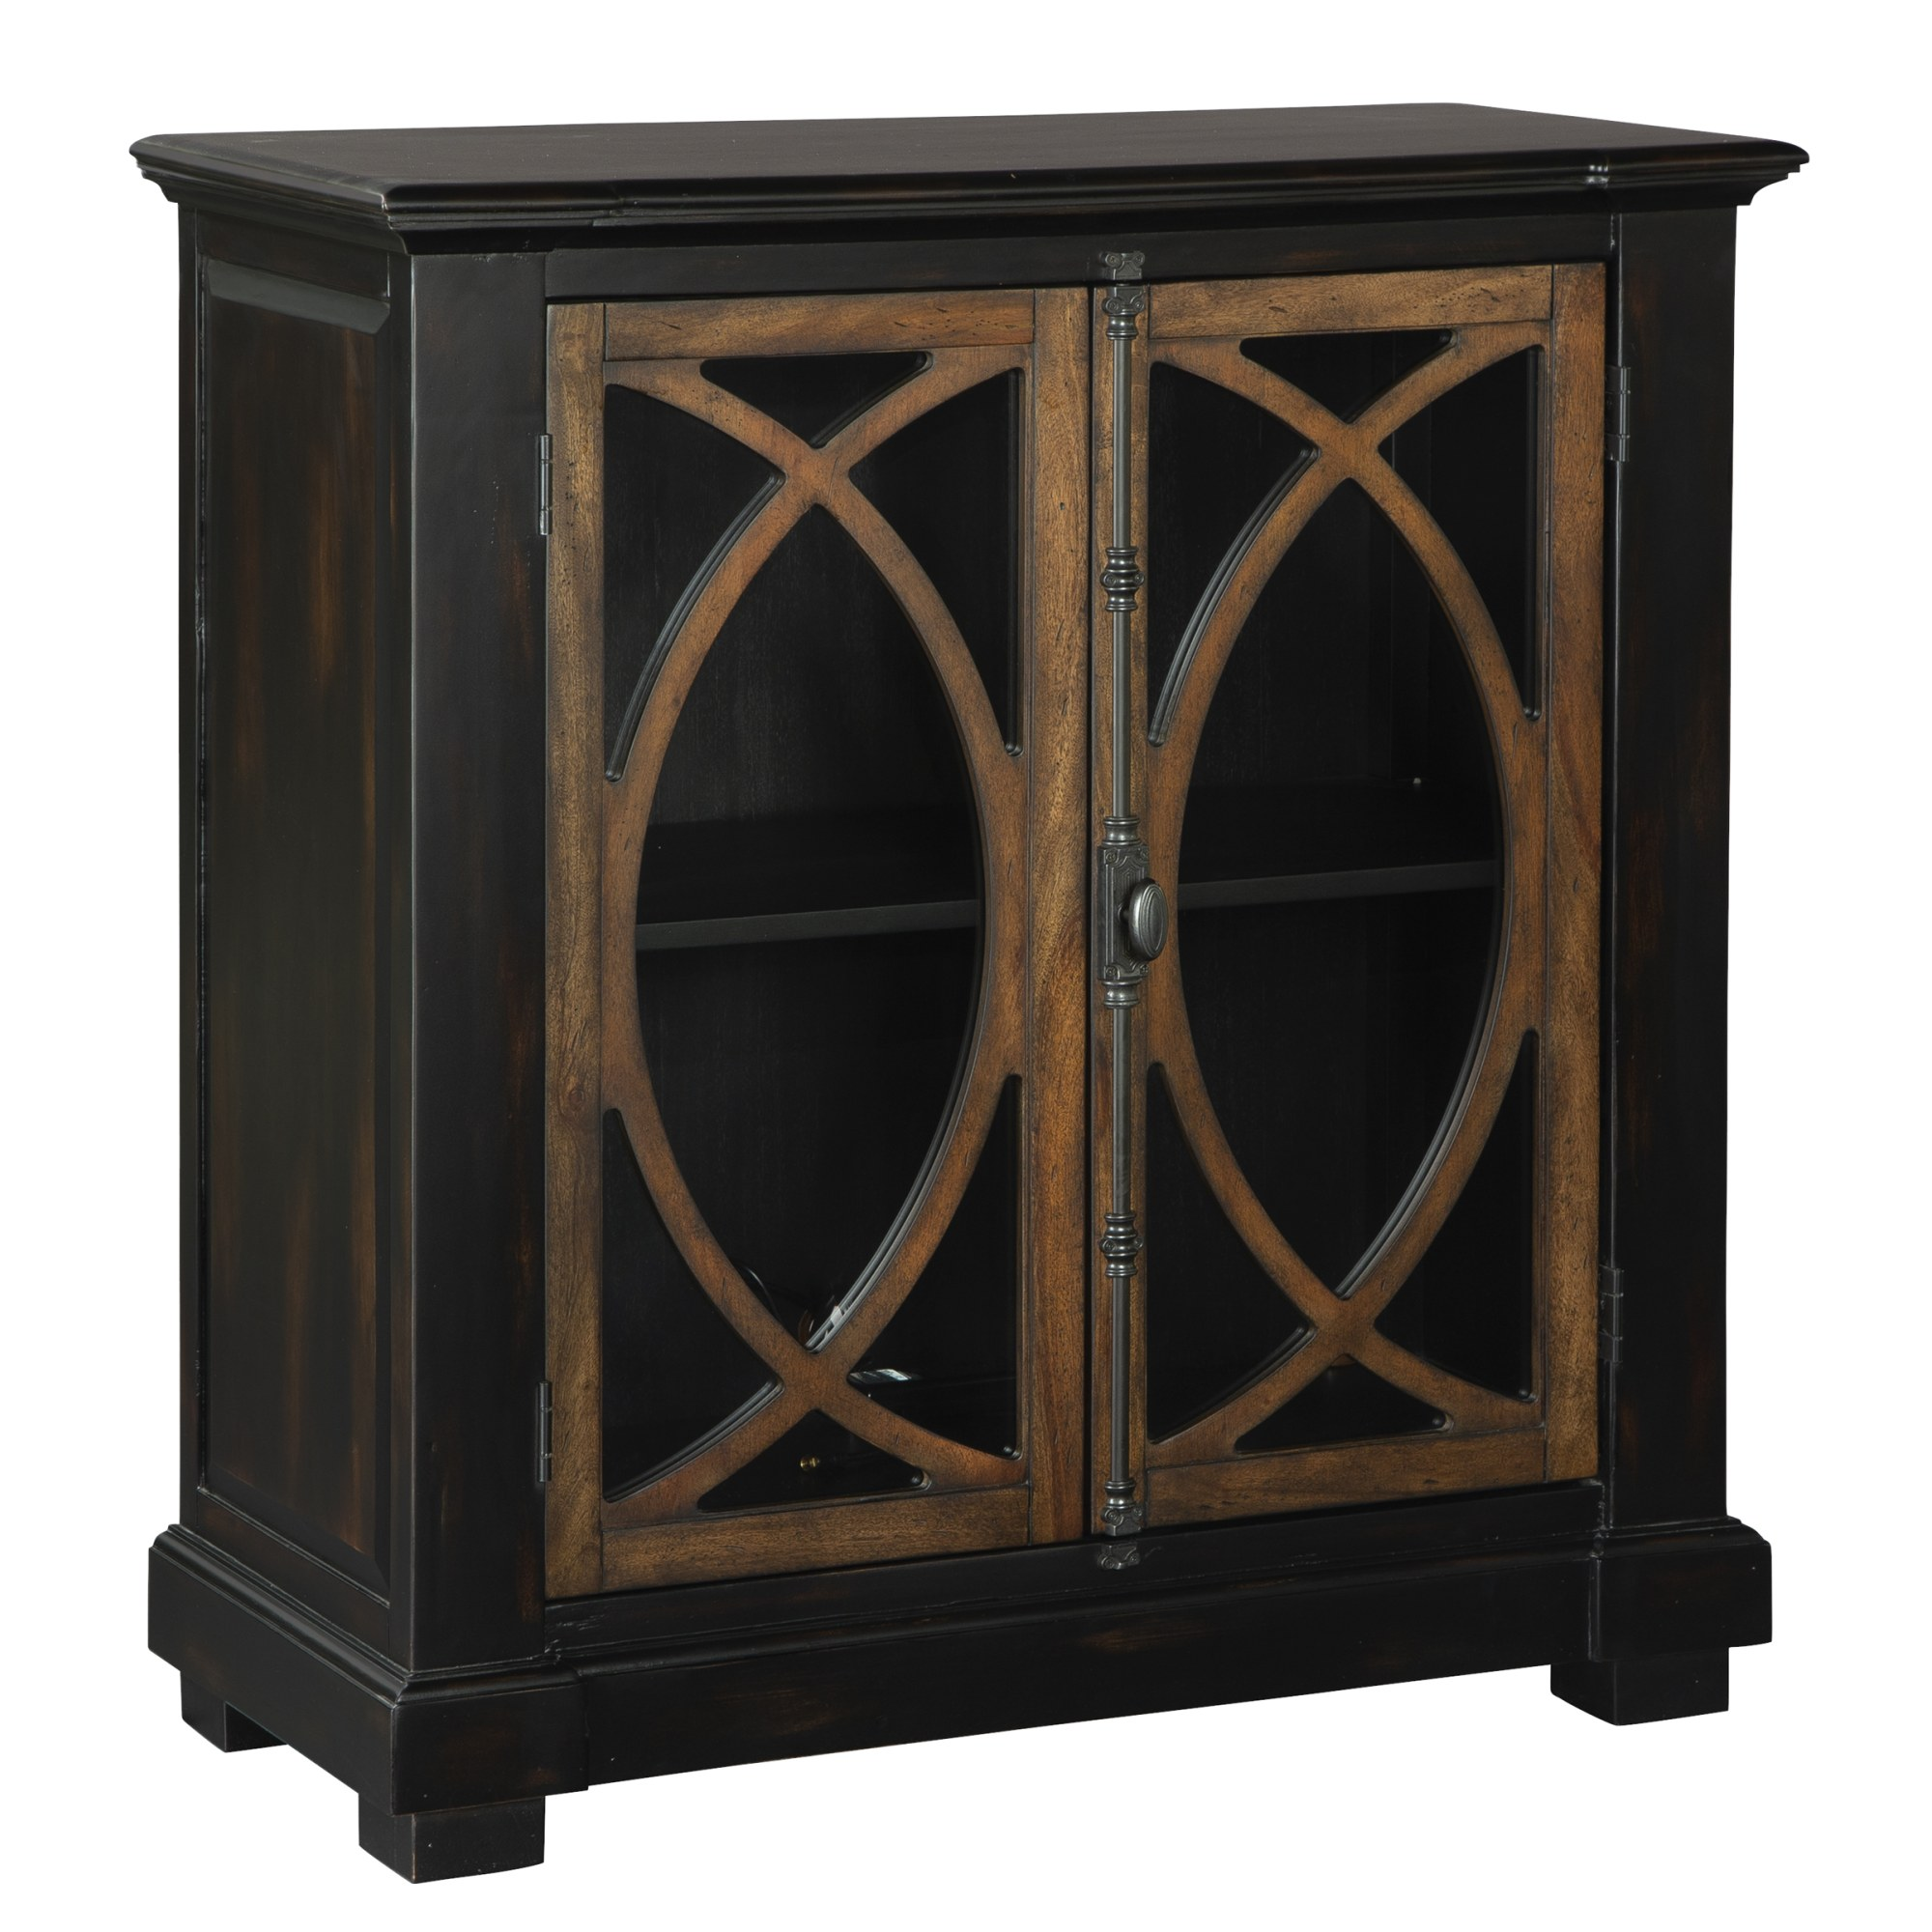 Image for 2-8027 Two Door Circle Lattice Entertainment Center from Hekman Official Website